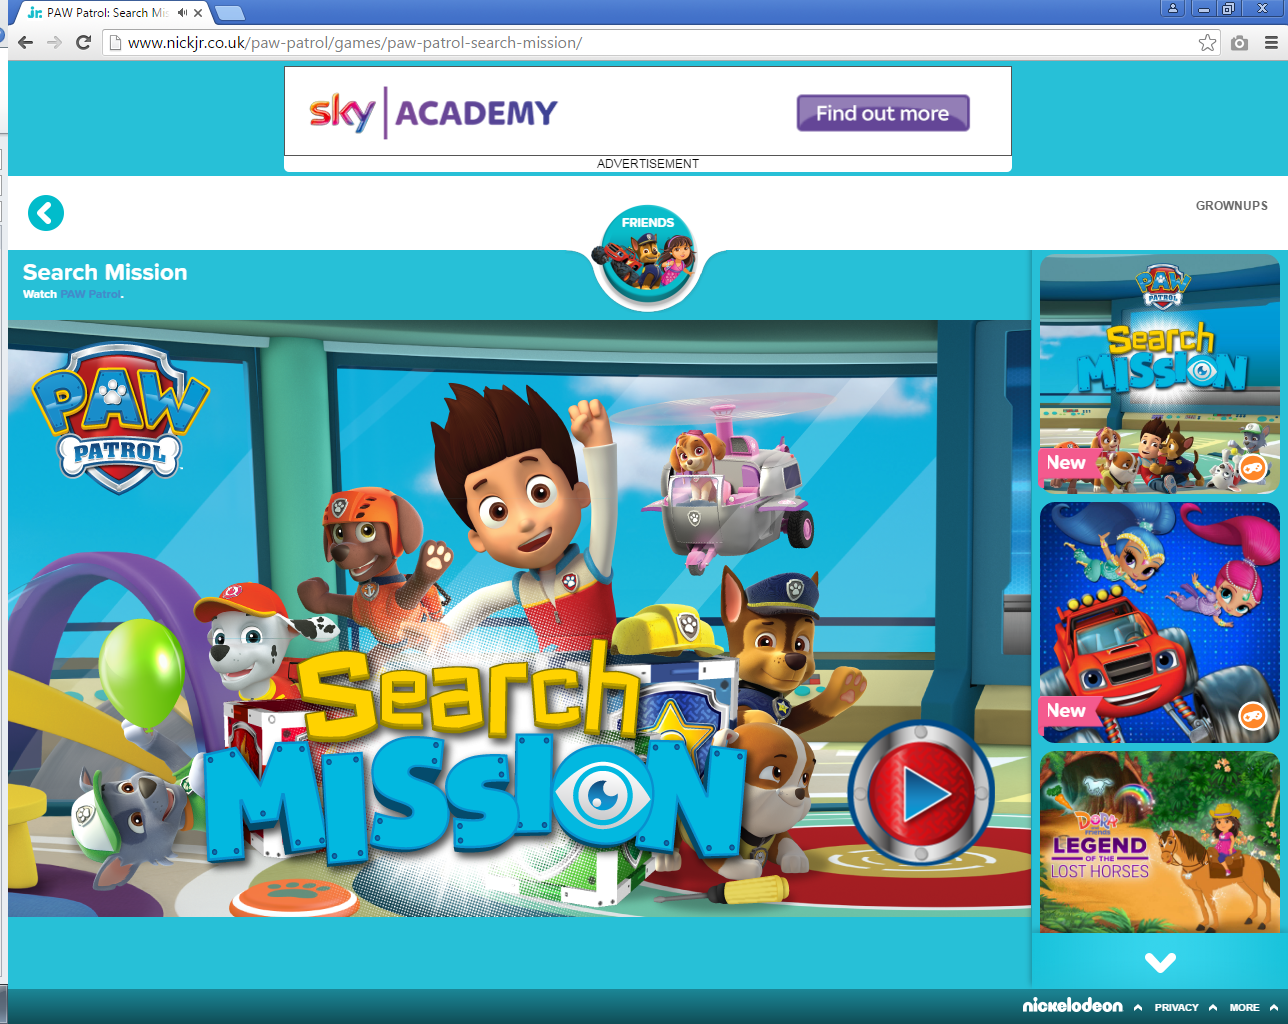 Mummy Of 3 Diaries: Head to NickJR For More Fun Than Ever Before ...